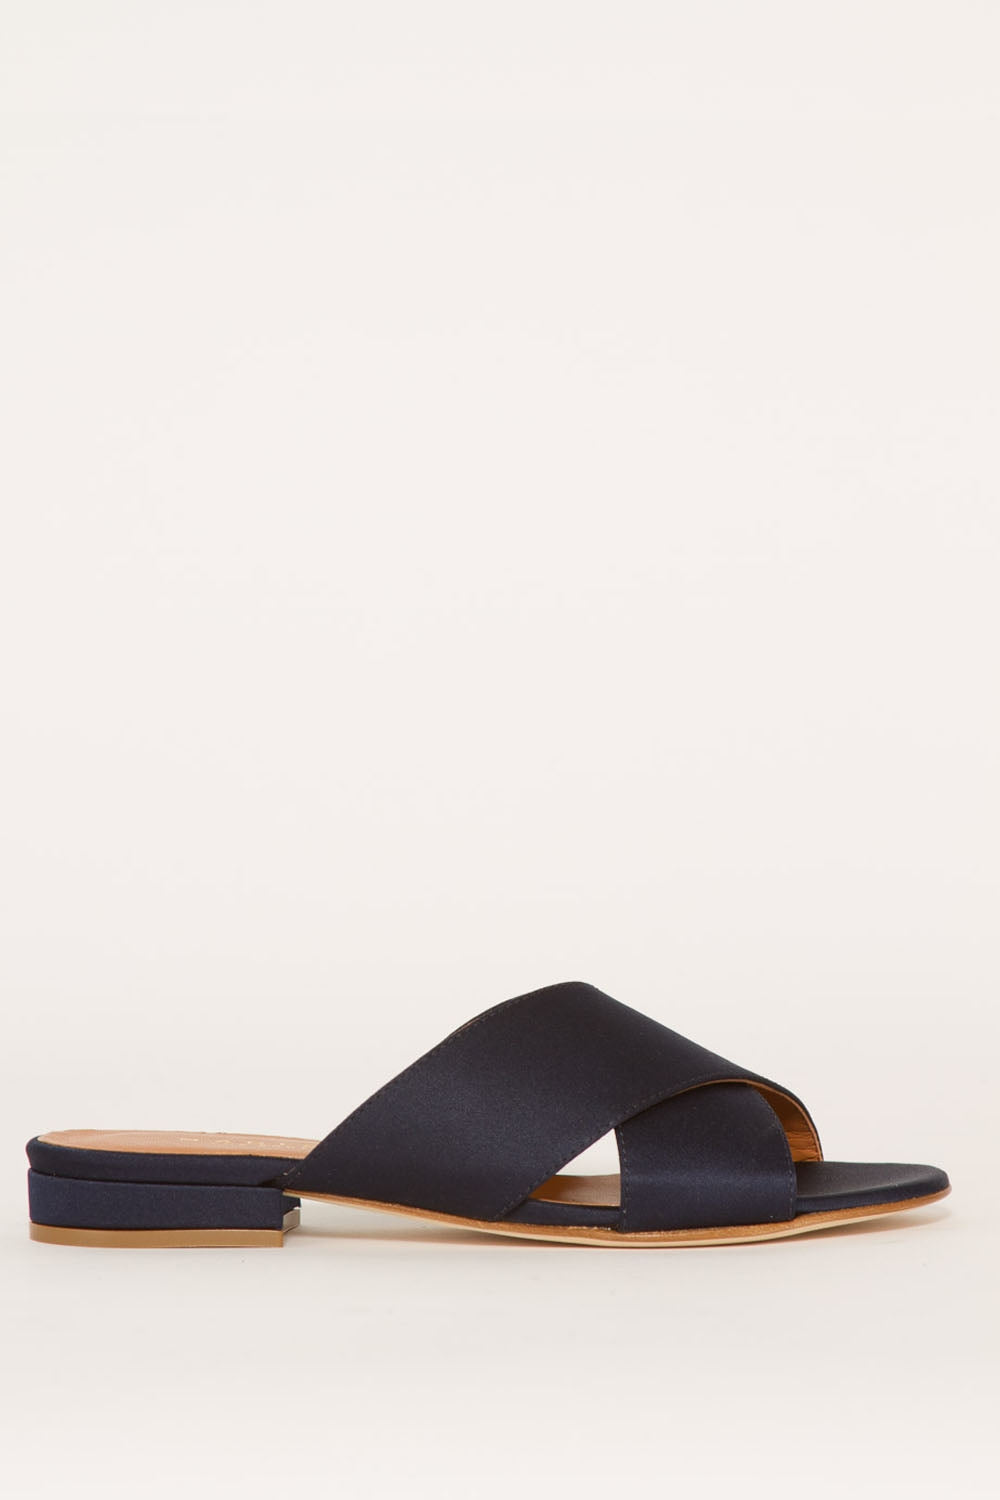 Crossover Sandals Navy Madison top quality eastbay sale online free shipping enjoy outlet the cheapest JFKZQGKBrZ